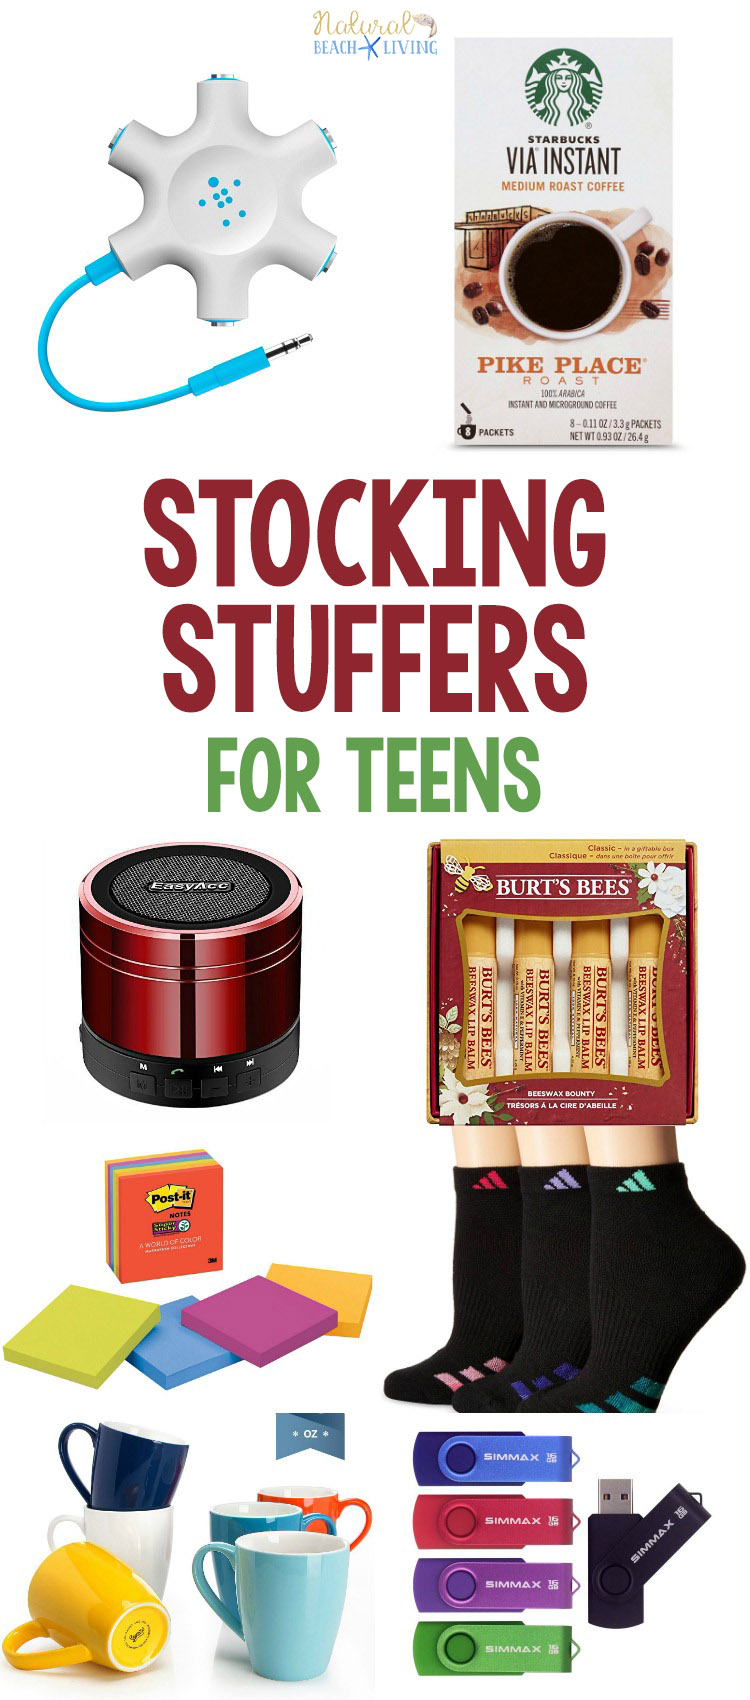 25+ Educational Stocking Stuffers for Kids, Best Stocking Stuffers, Stocking Stuffers for Kids, You'll find educational card games, art supplies, alphabet toys, slime and science experiments and so much more. The stocking stuffers you'll find here are gift ideas that kids love to use and parents love to give.